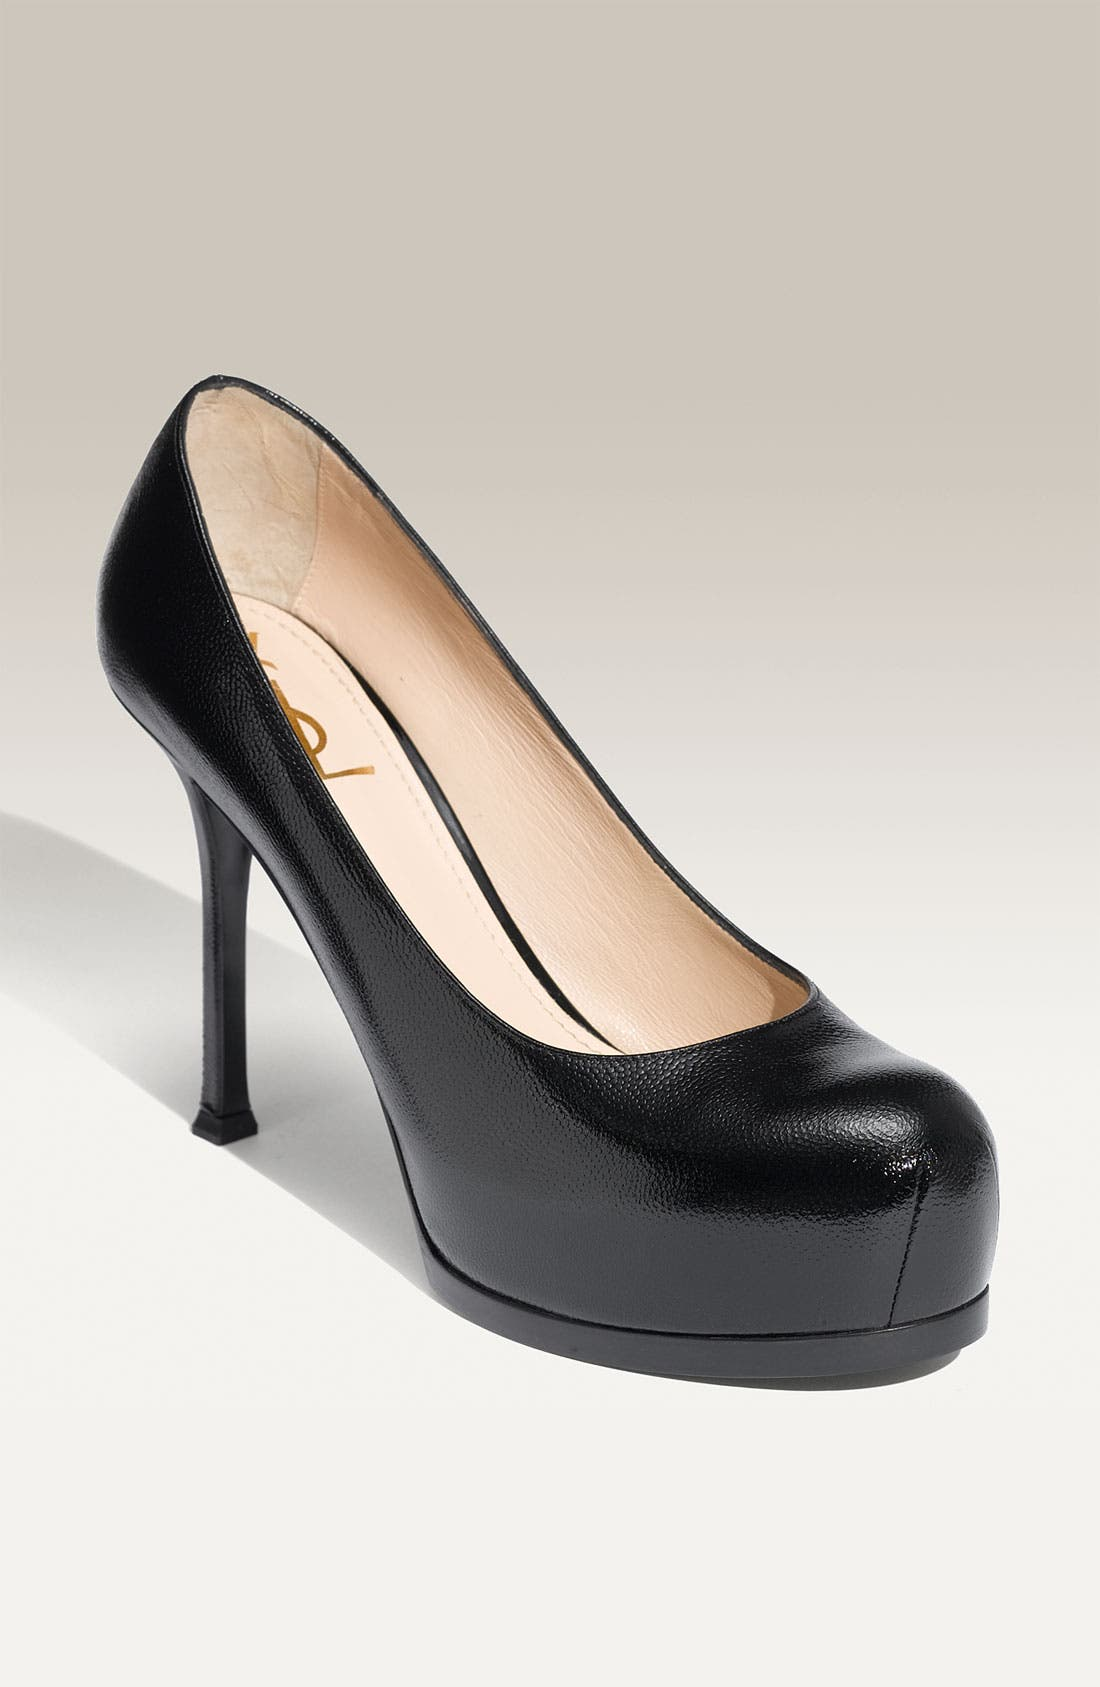 Main Image - Saint Laurent 'Tribute Two' Platform Pump